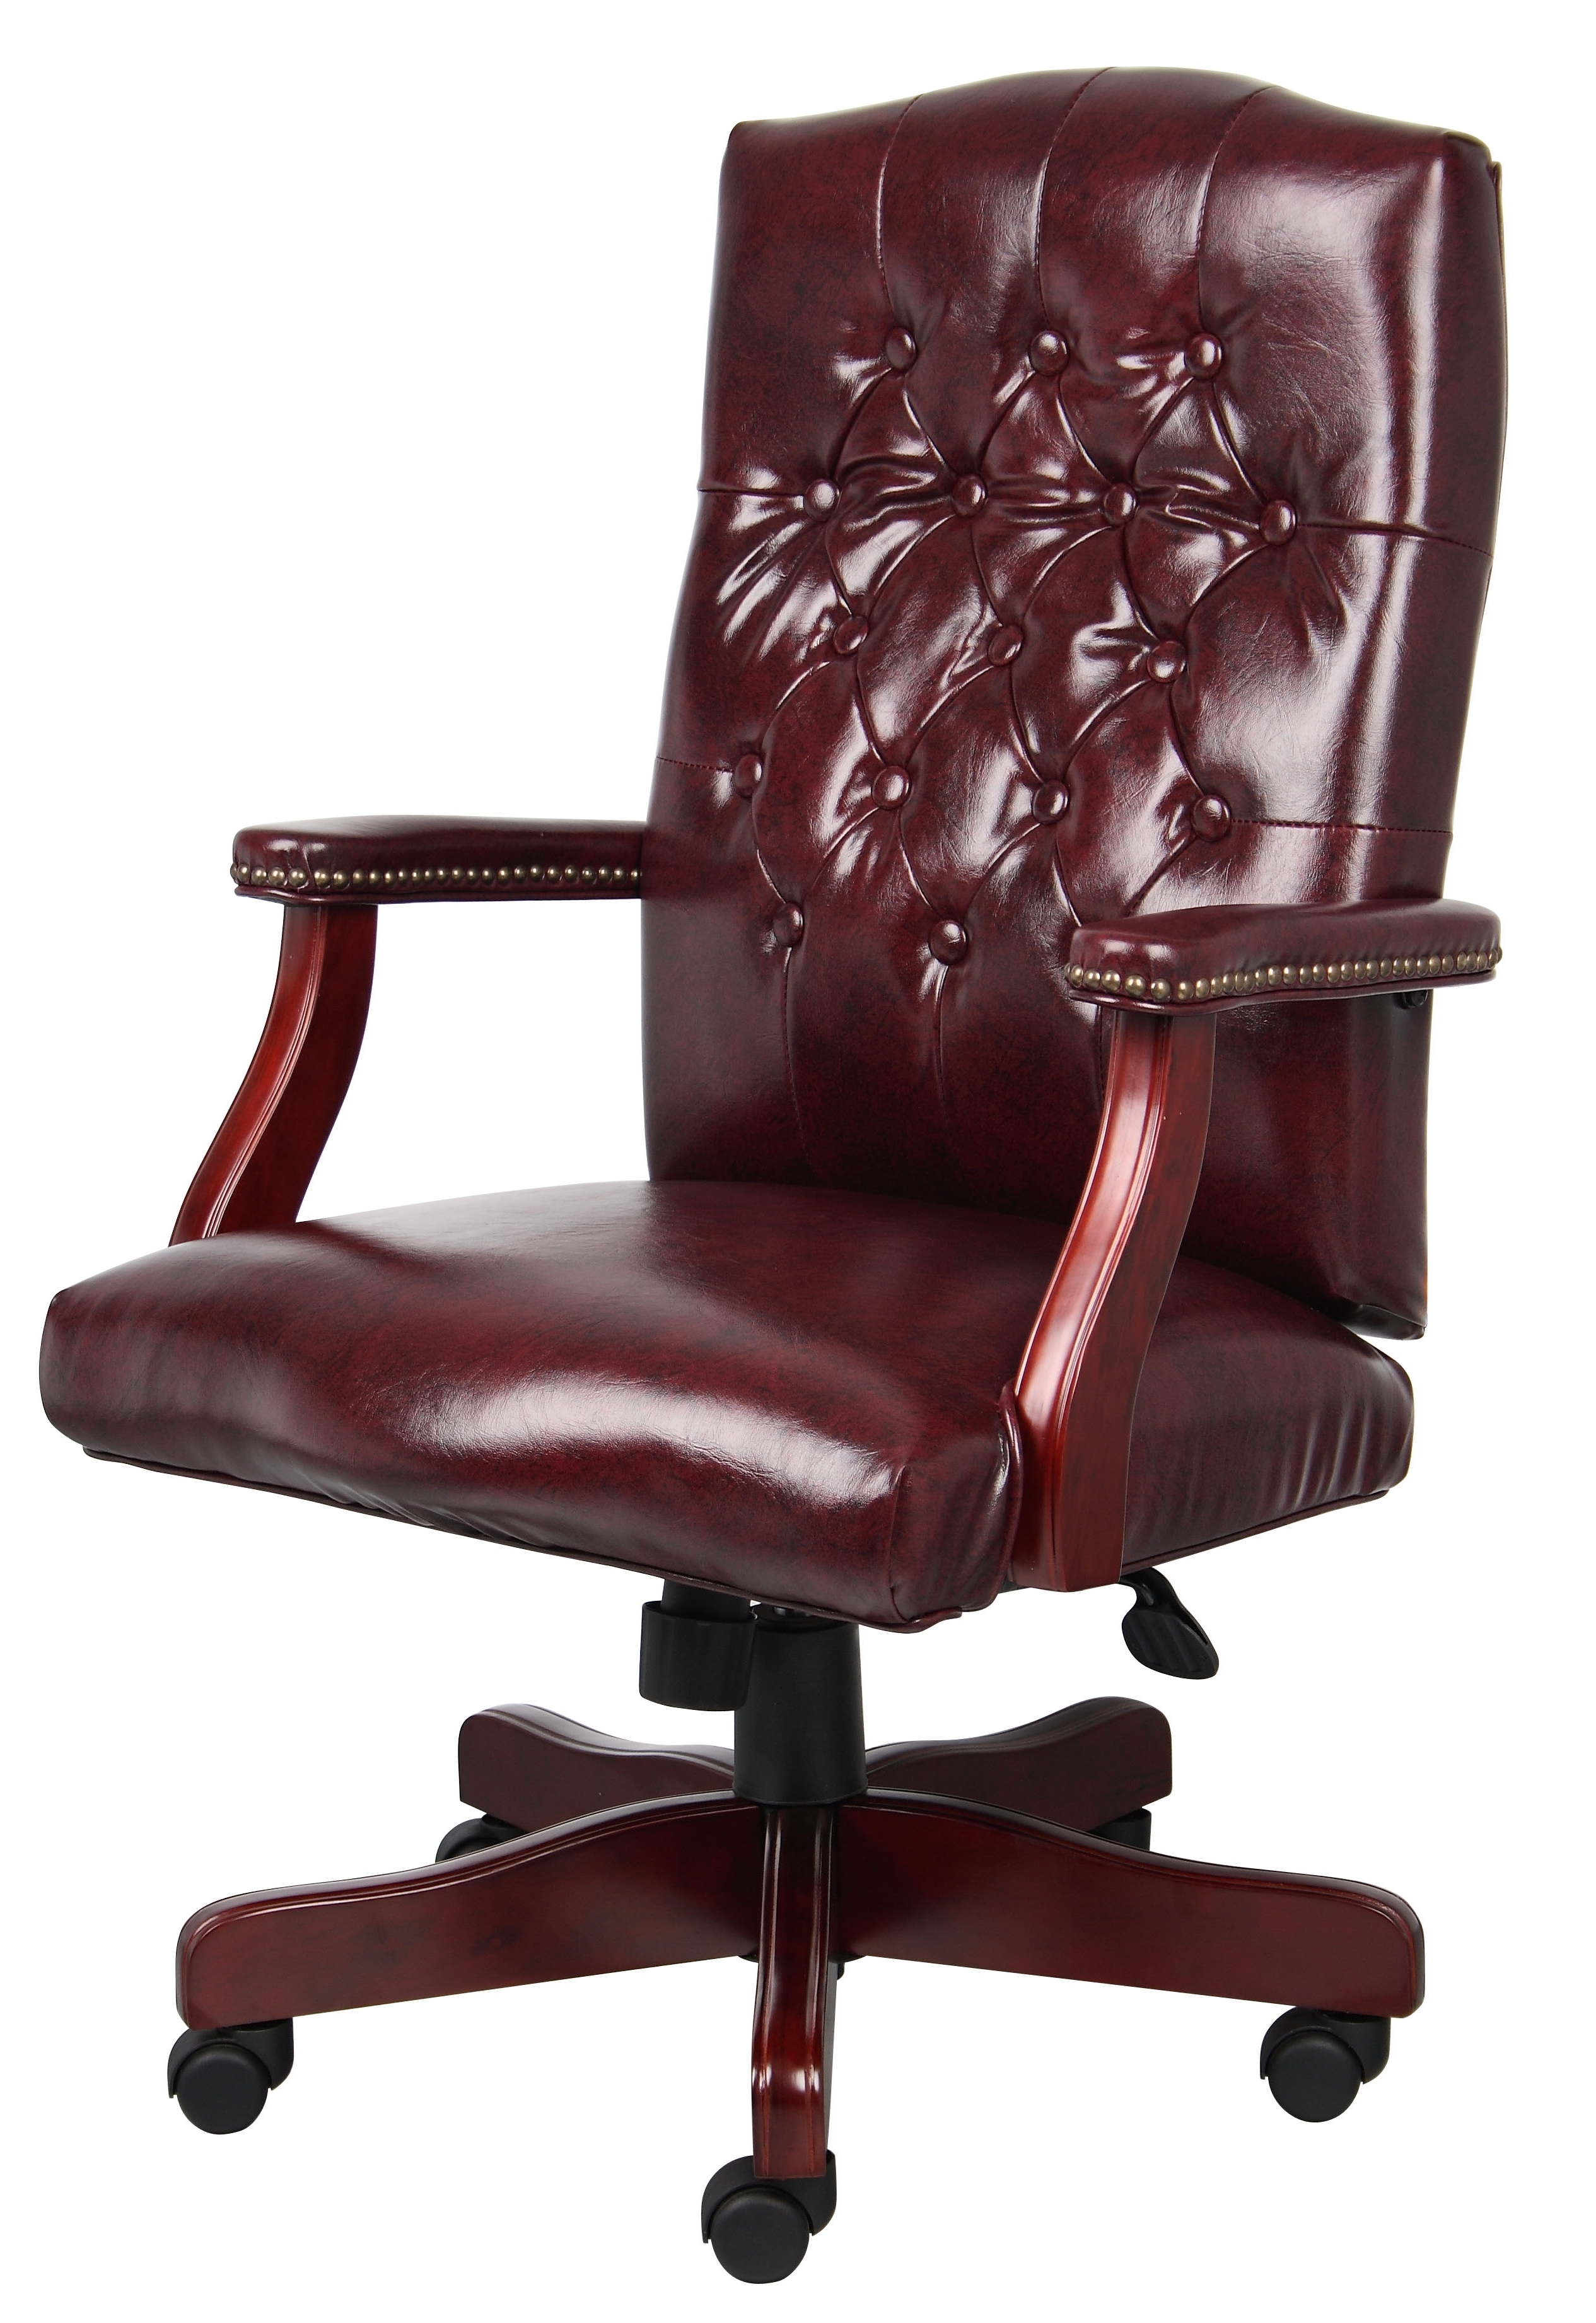 Traditional Executive Office Chairs Regarding Most Up To Date Traditional Mahogany Executive Chair (View 9 of 20)